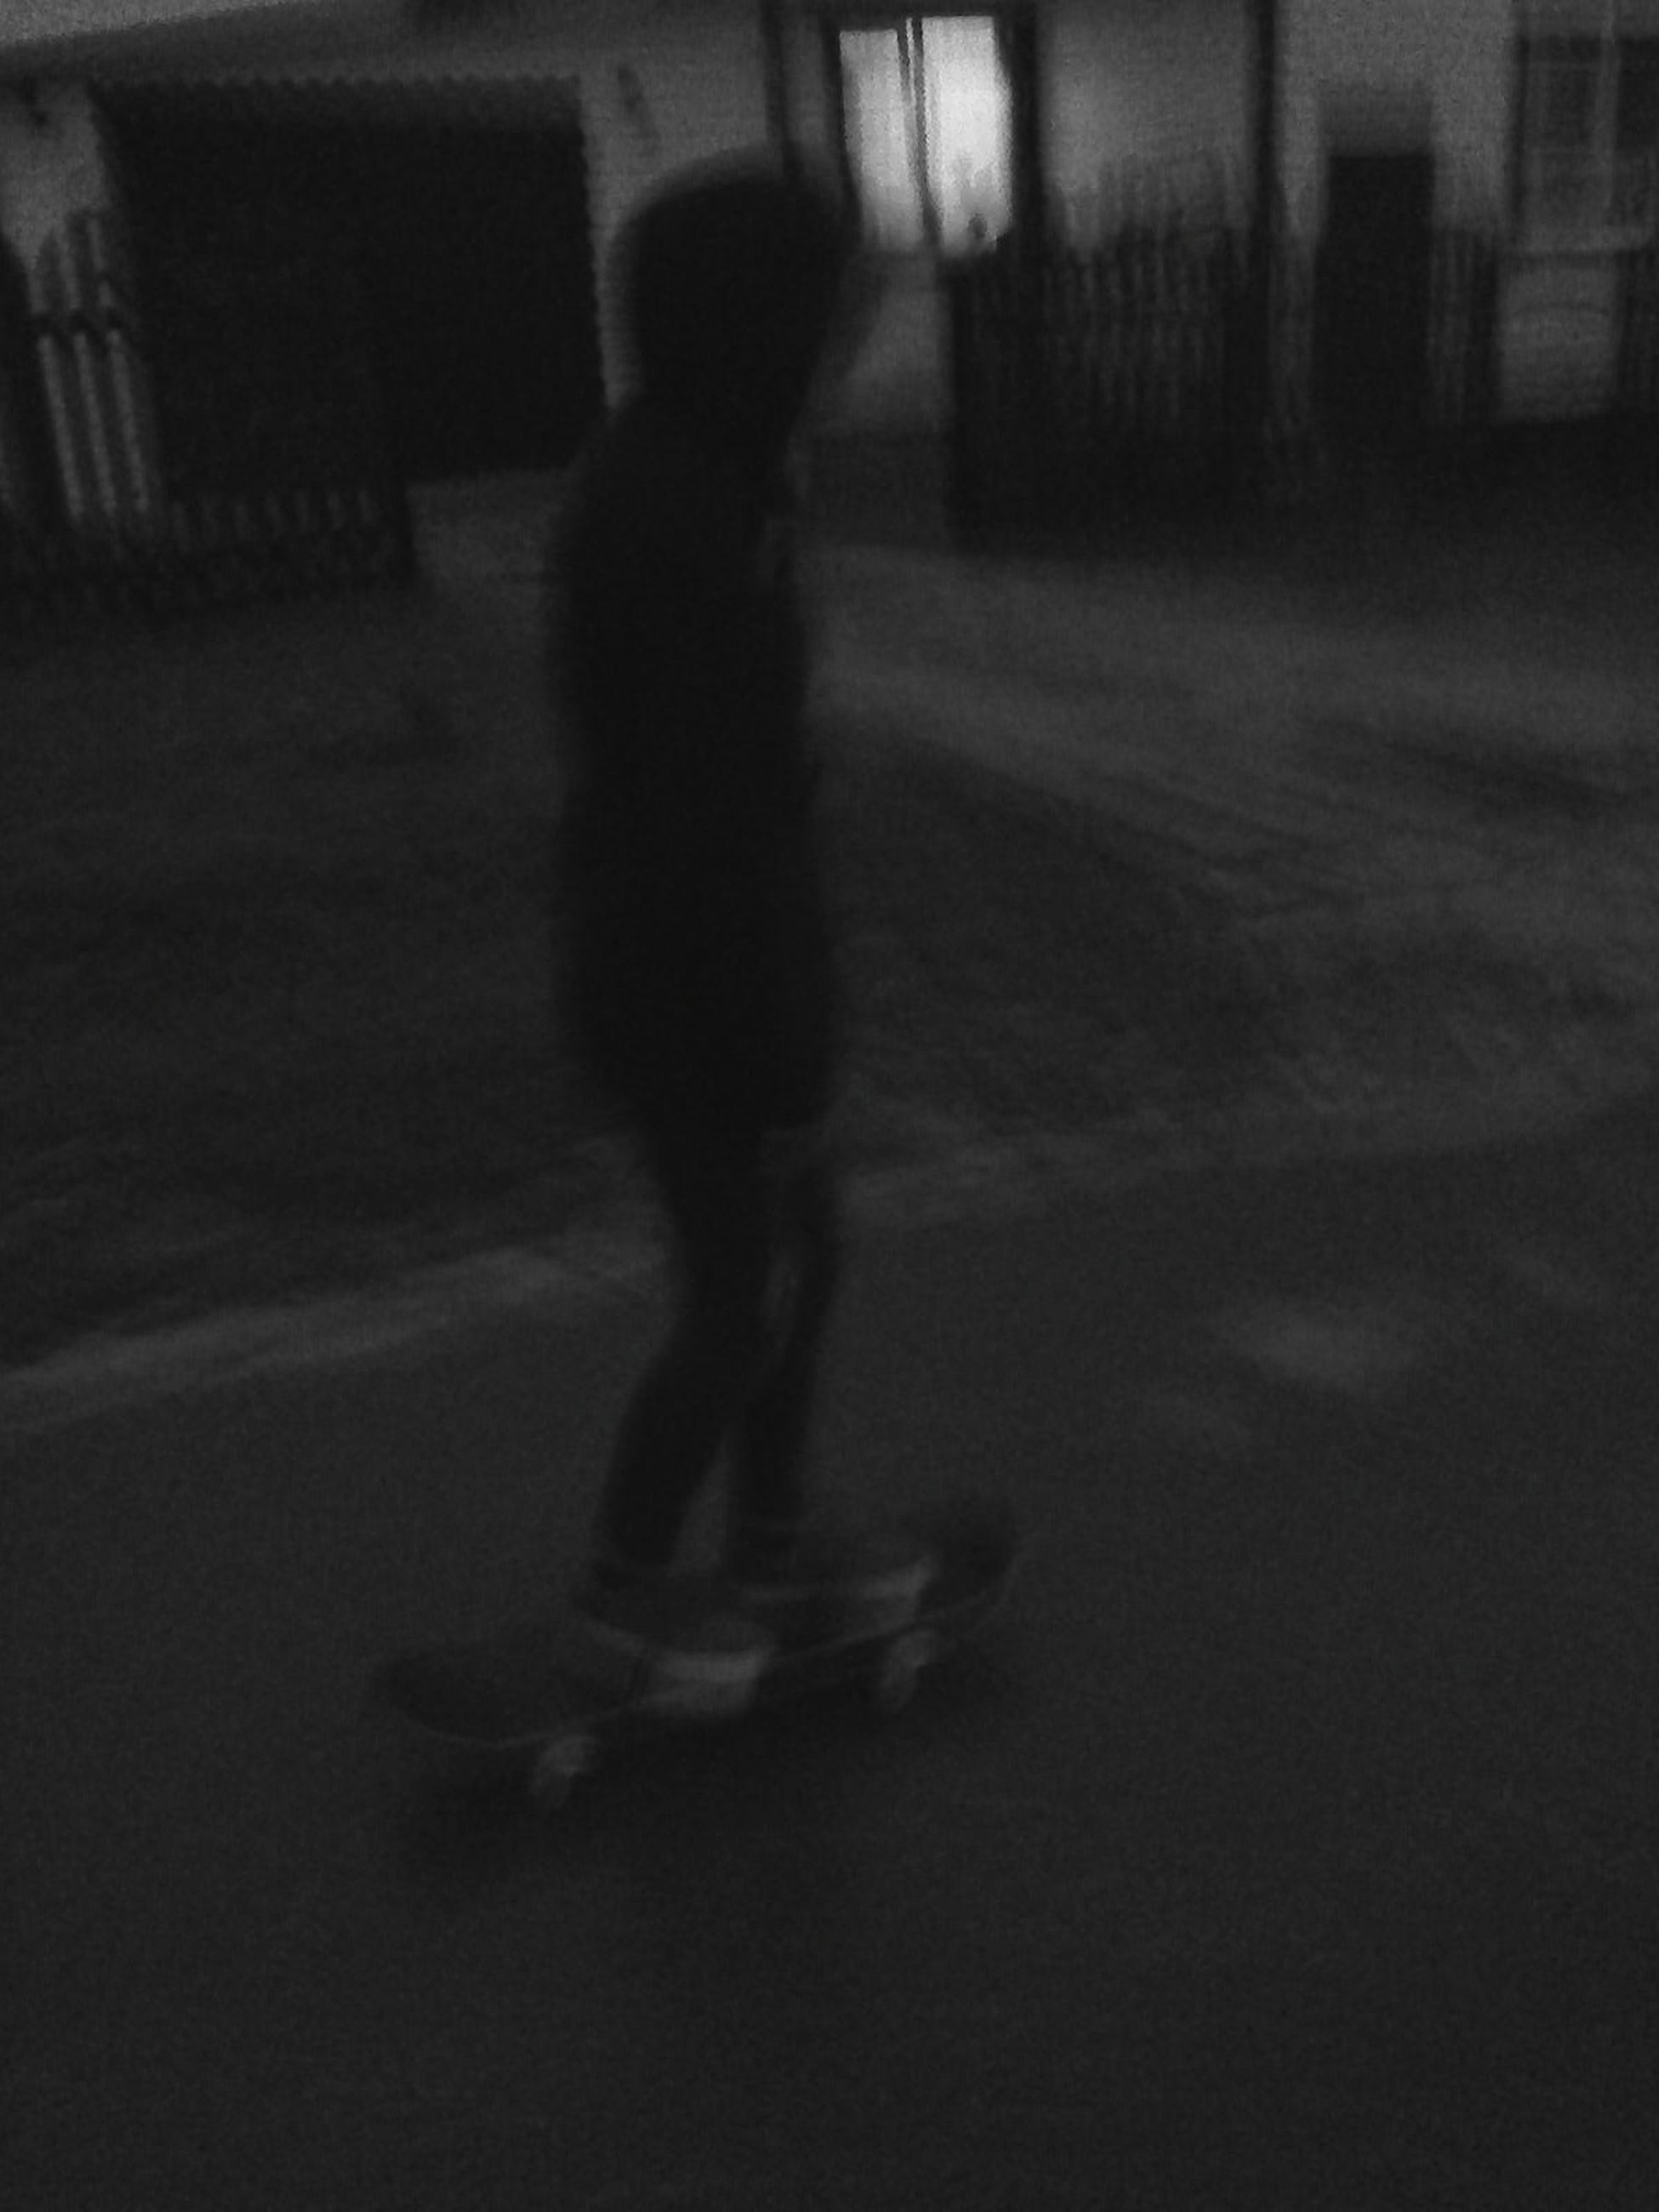 lifestyles, silhouette, walking, leisure activity, full length, shadow, standing, unrecognizable person, men, person, rear view, side view, street, blurred motion, night, sunlight, indoors, low section